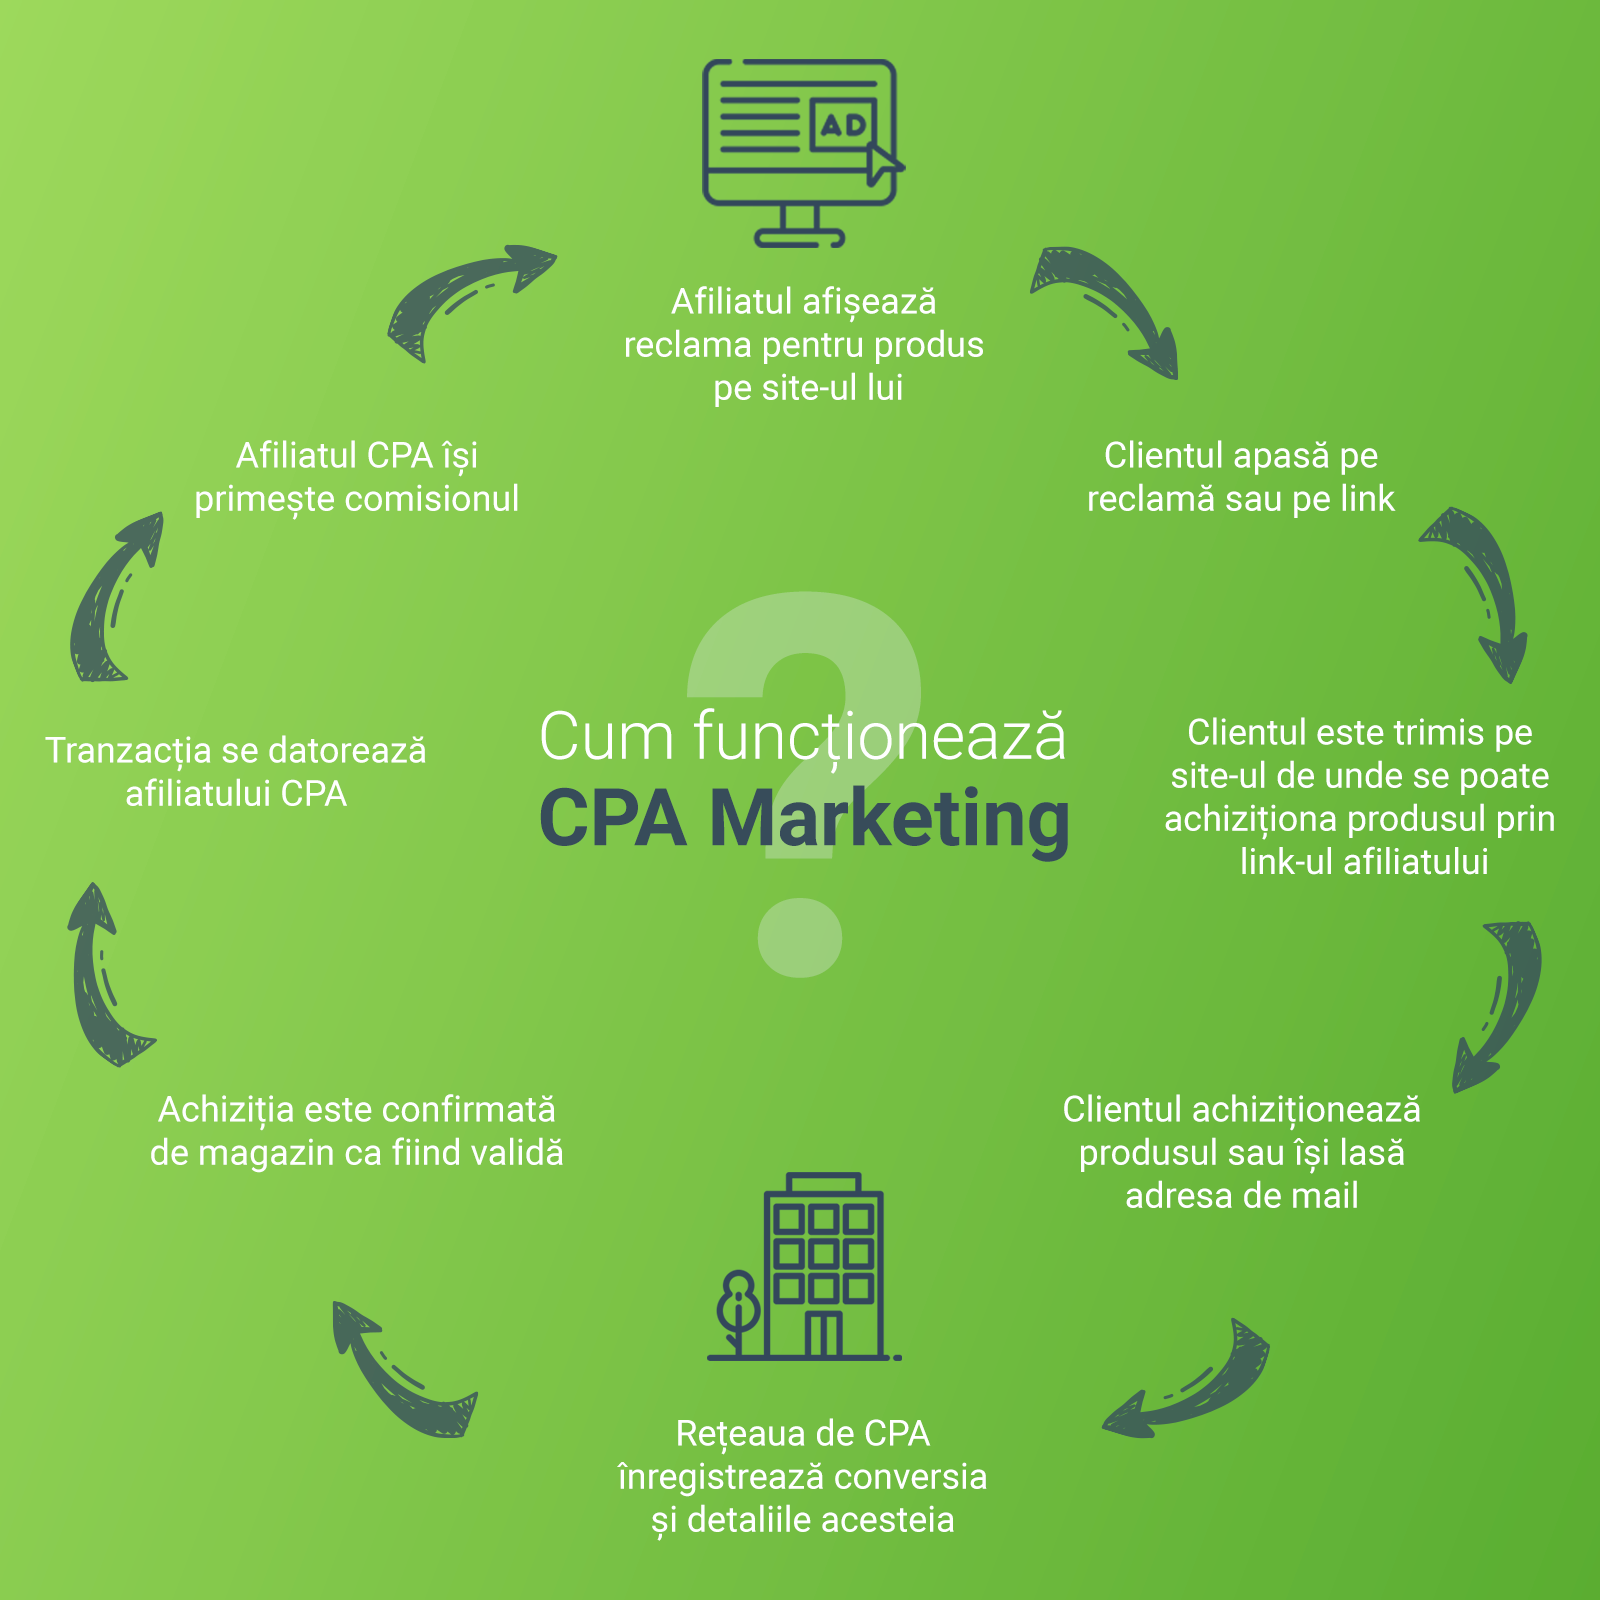 Proces CPA Marketing